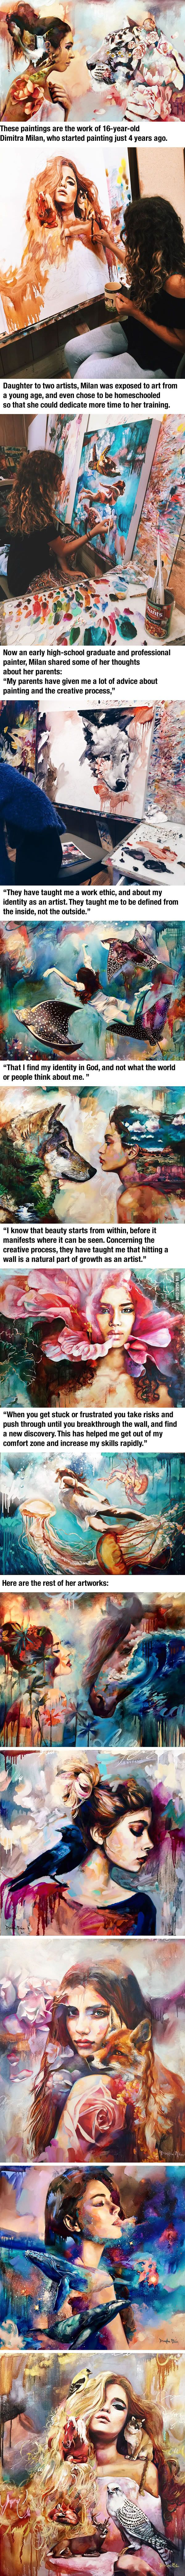 Talented 16-Year-Old Artist Turns Her Wildest Dreams Into Paintings (by Dimitra Milan)